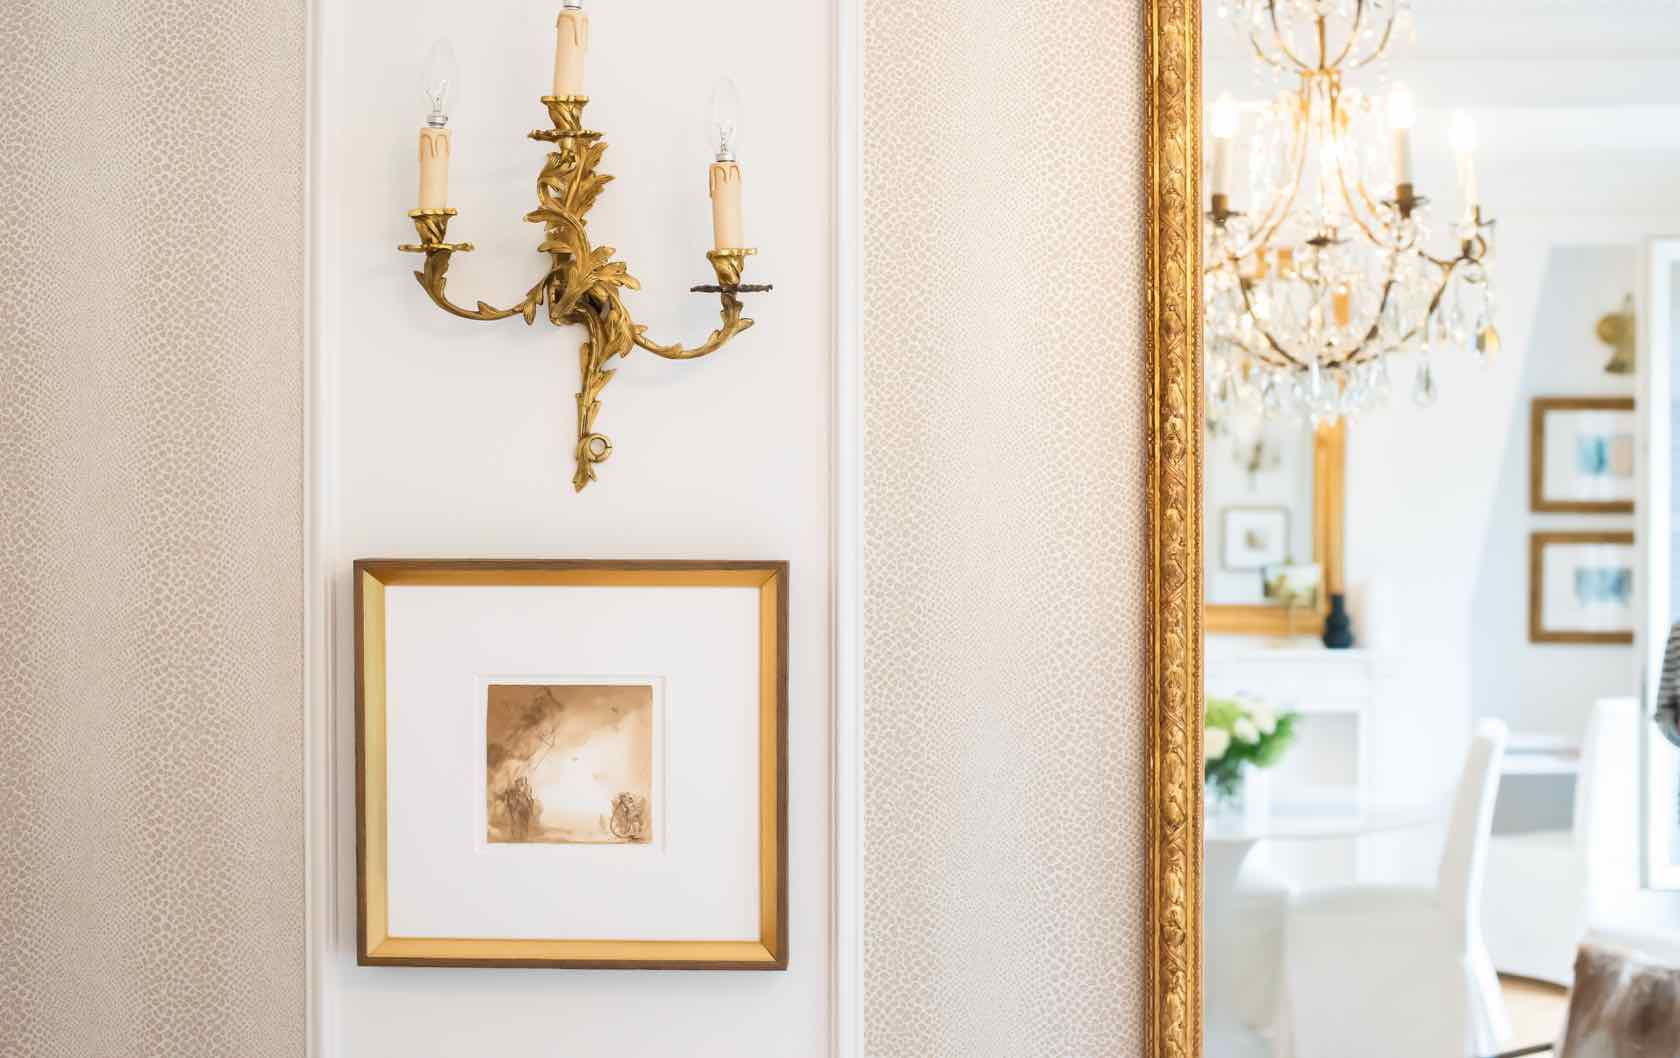 Paris Perfect Shared Vivant Apartment